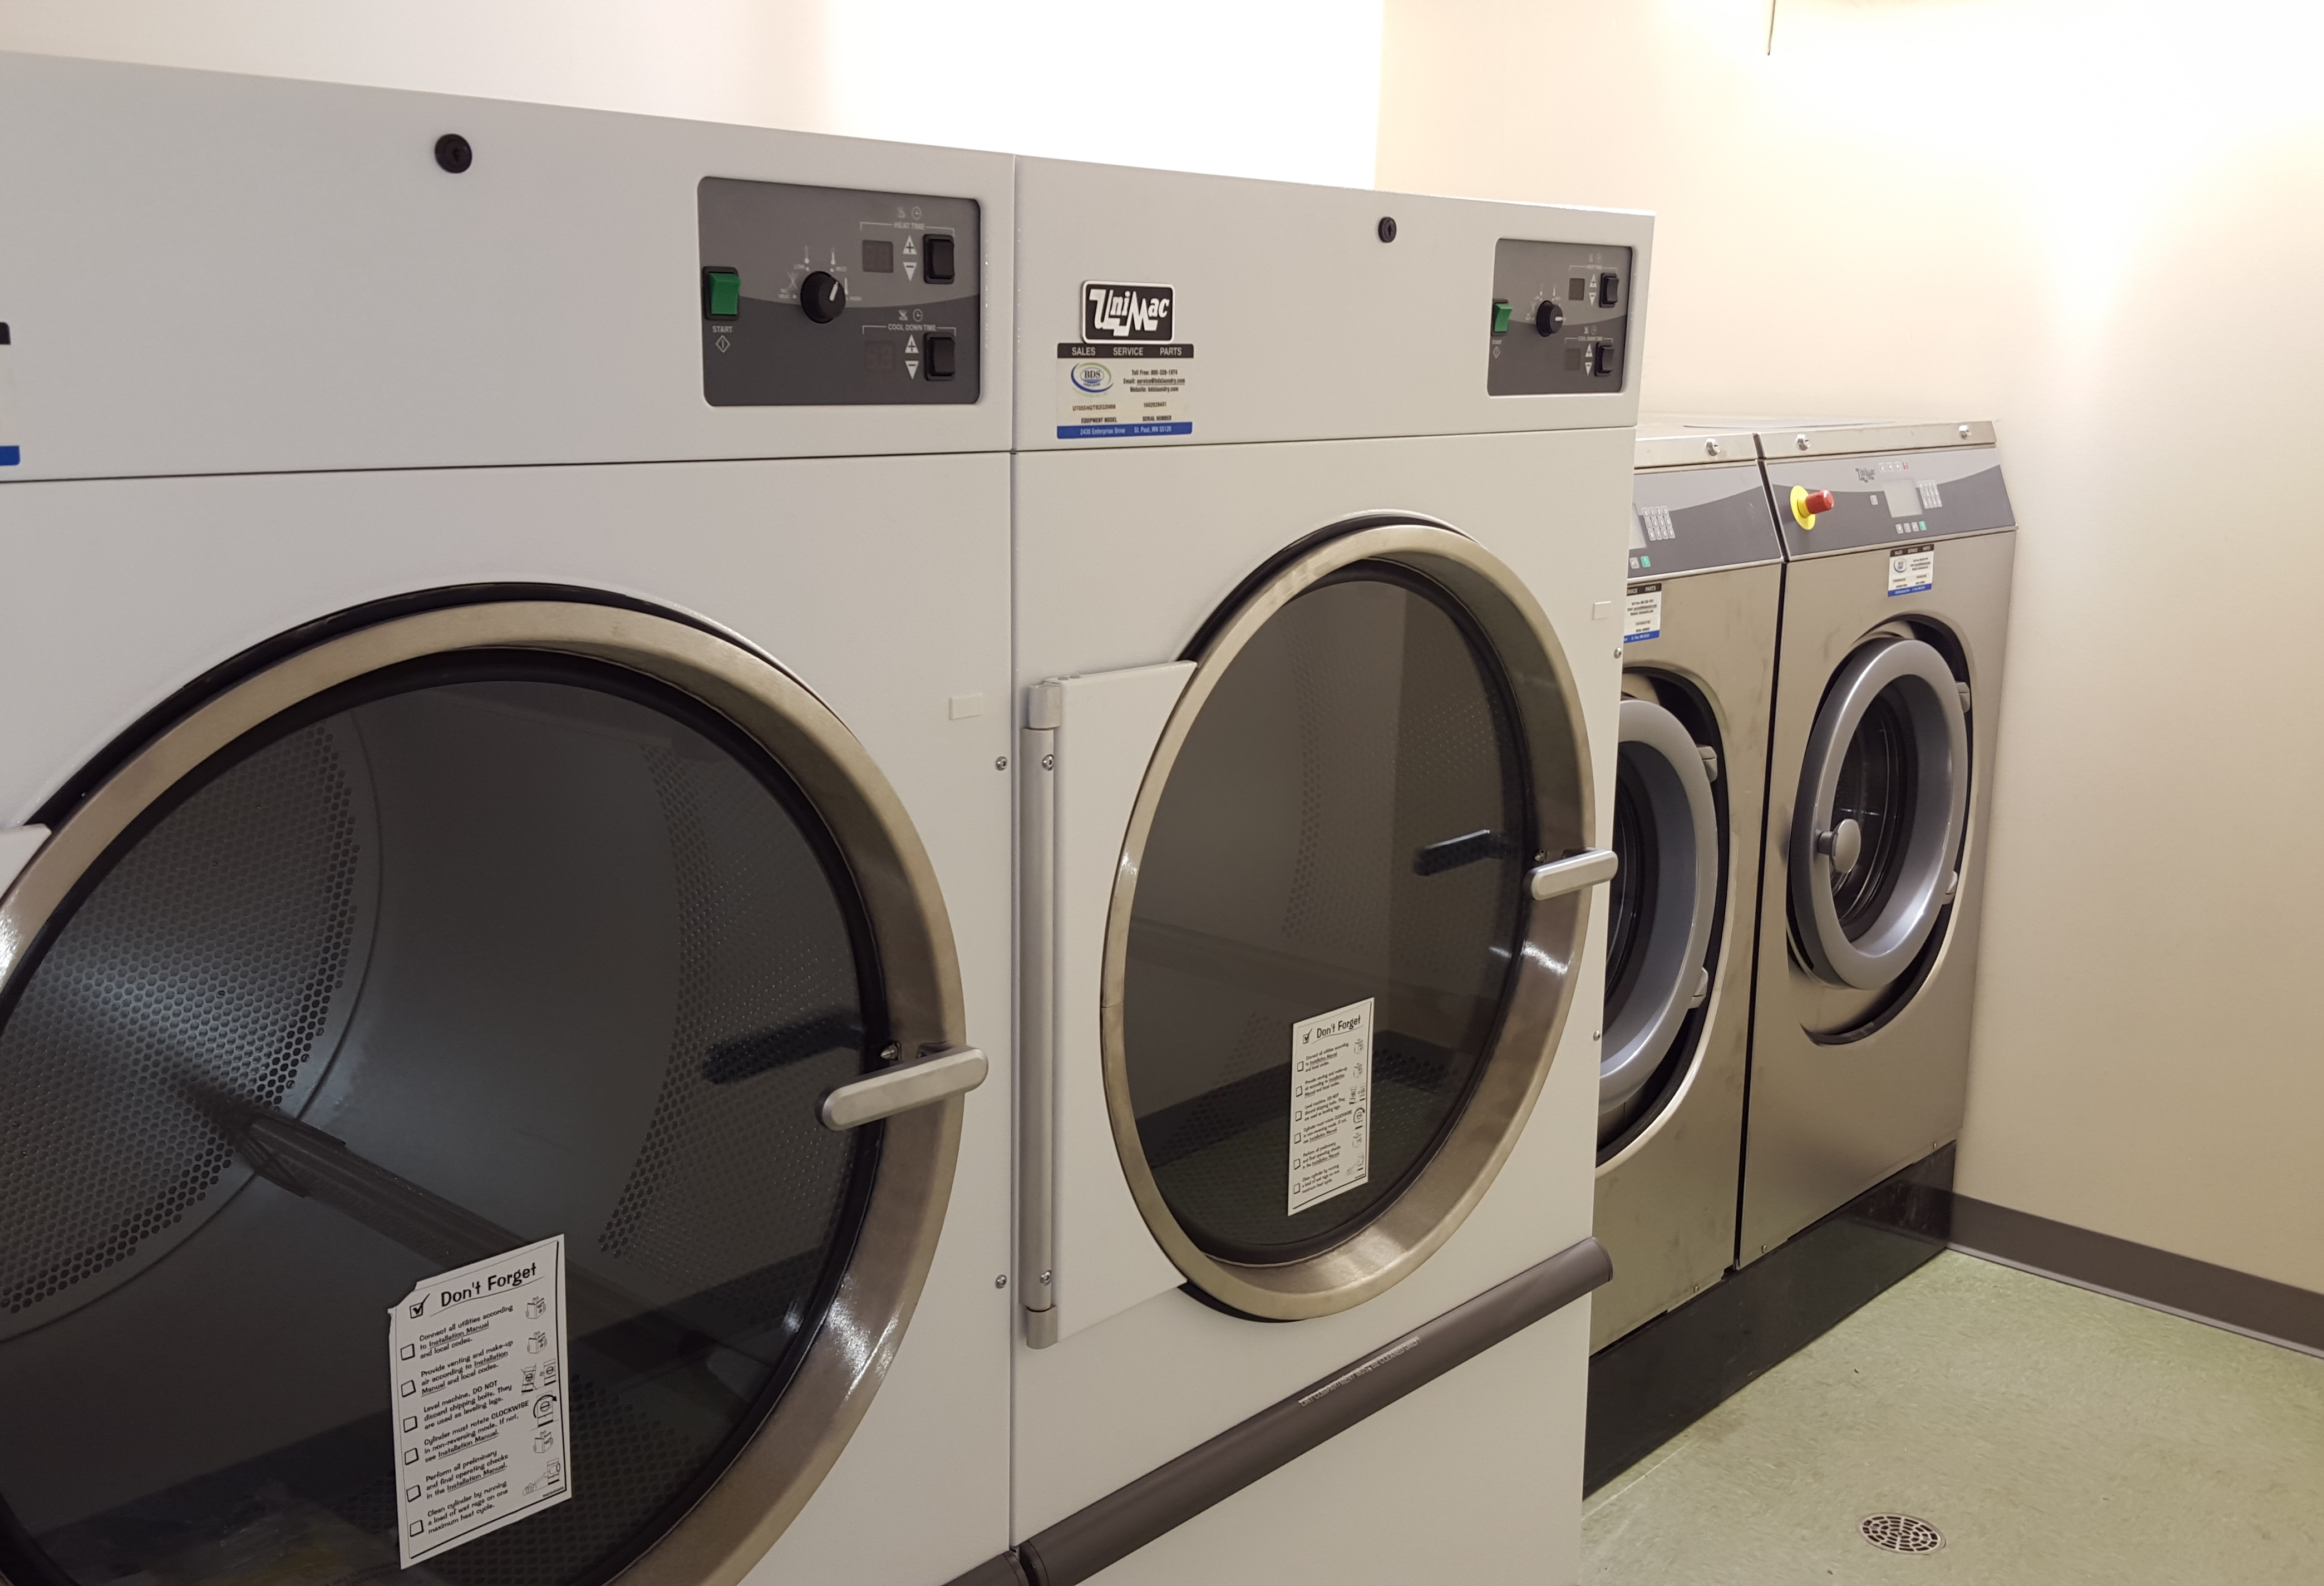 Bds laundry systems coupon code : Keyboard deals reddit